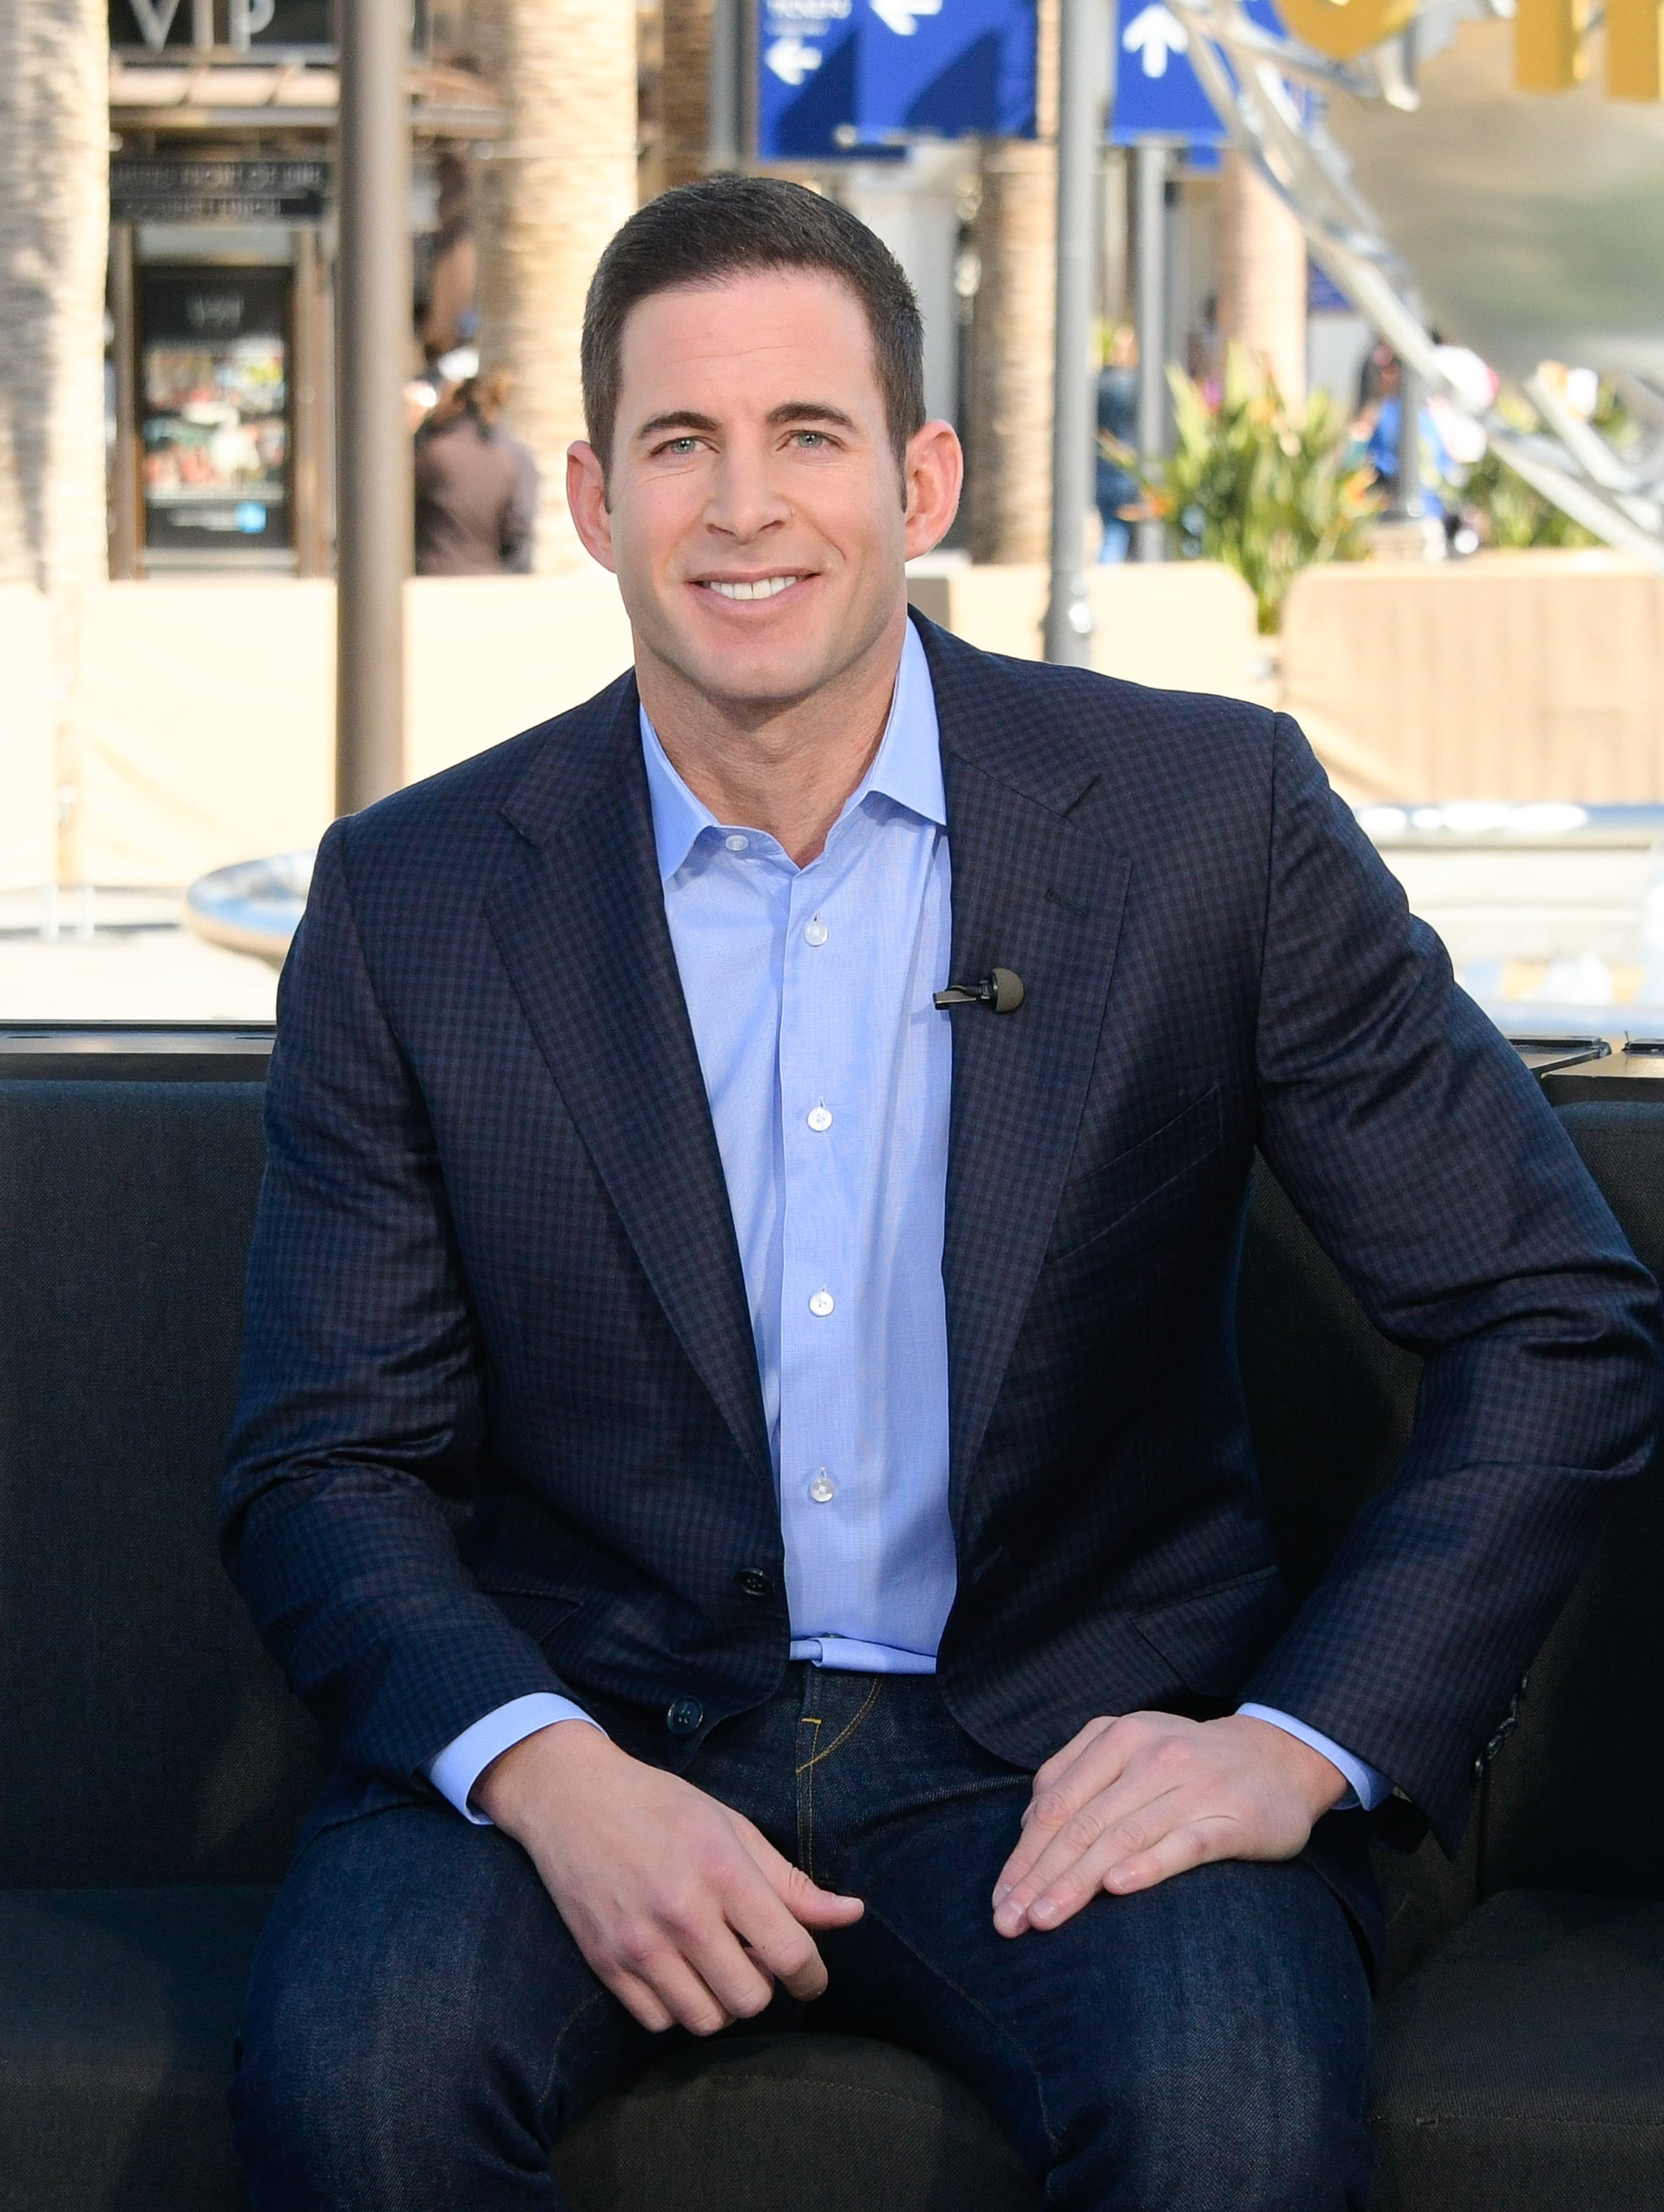 Tarek El Moussa Interview March 27 | POPSUGAR Home | title